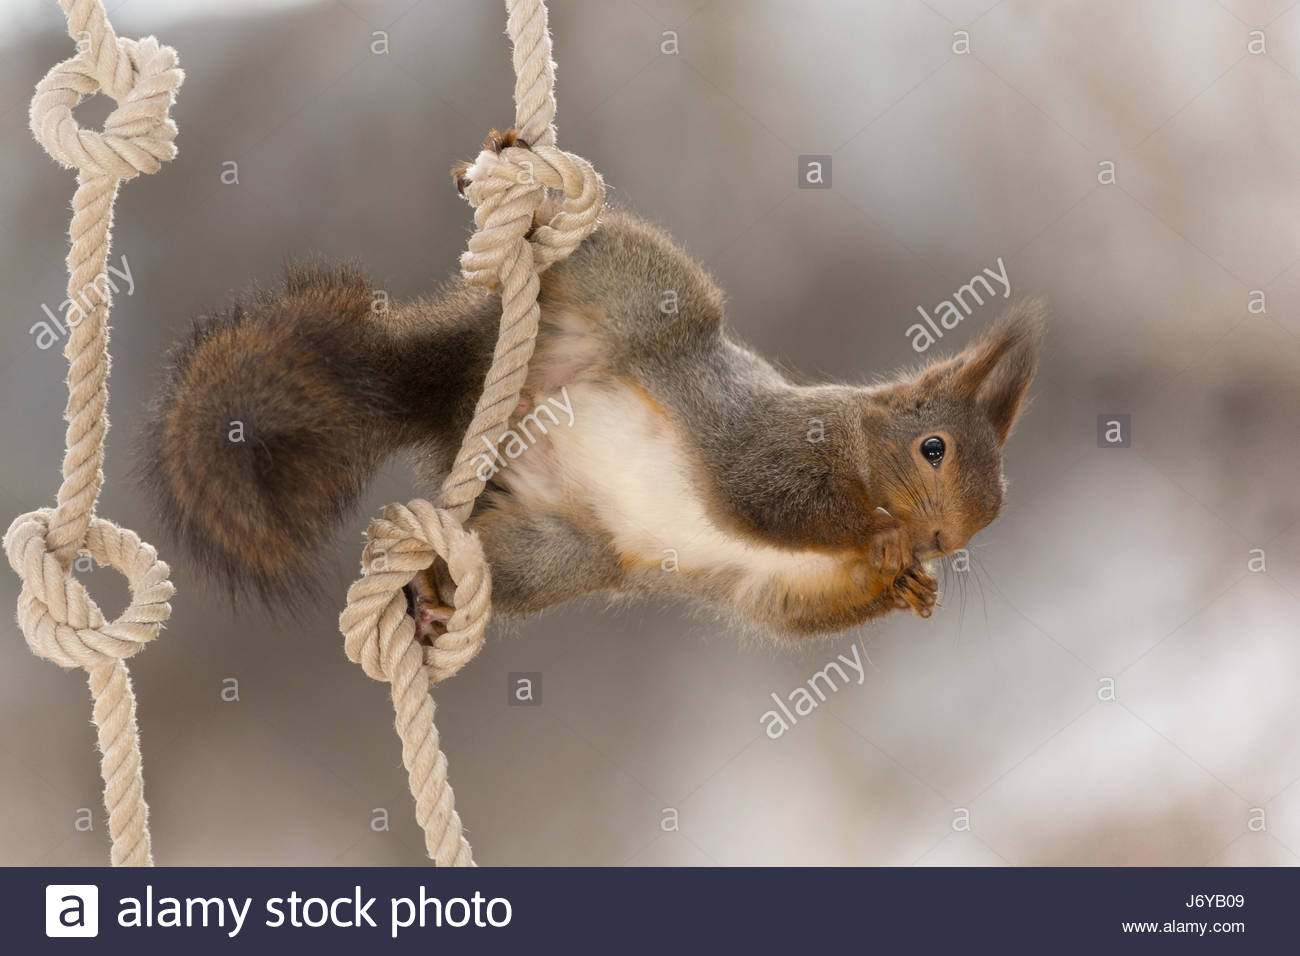 close-up-of-red-squirrel-hanging-on-the-